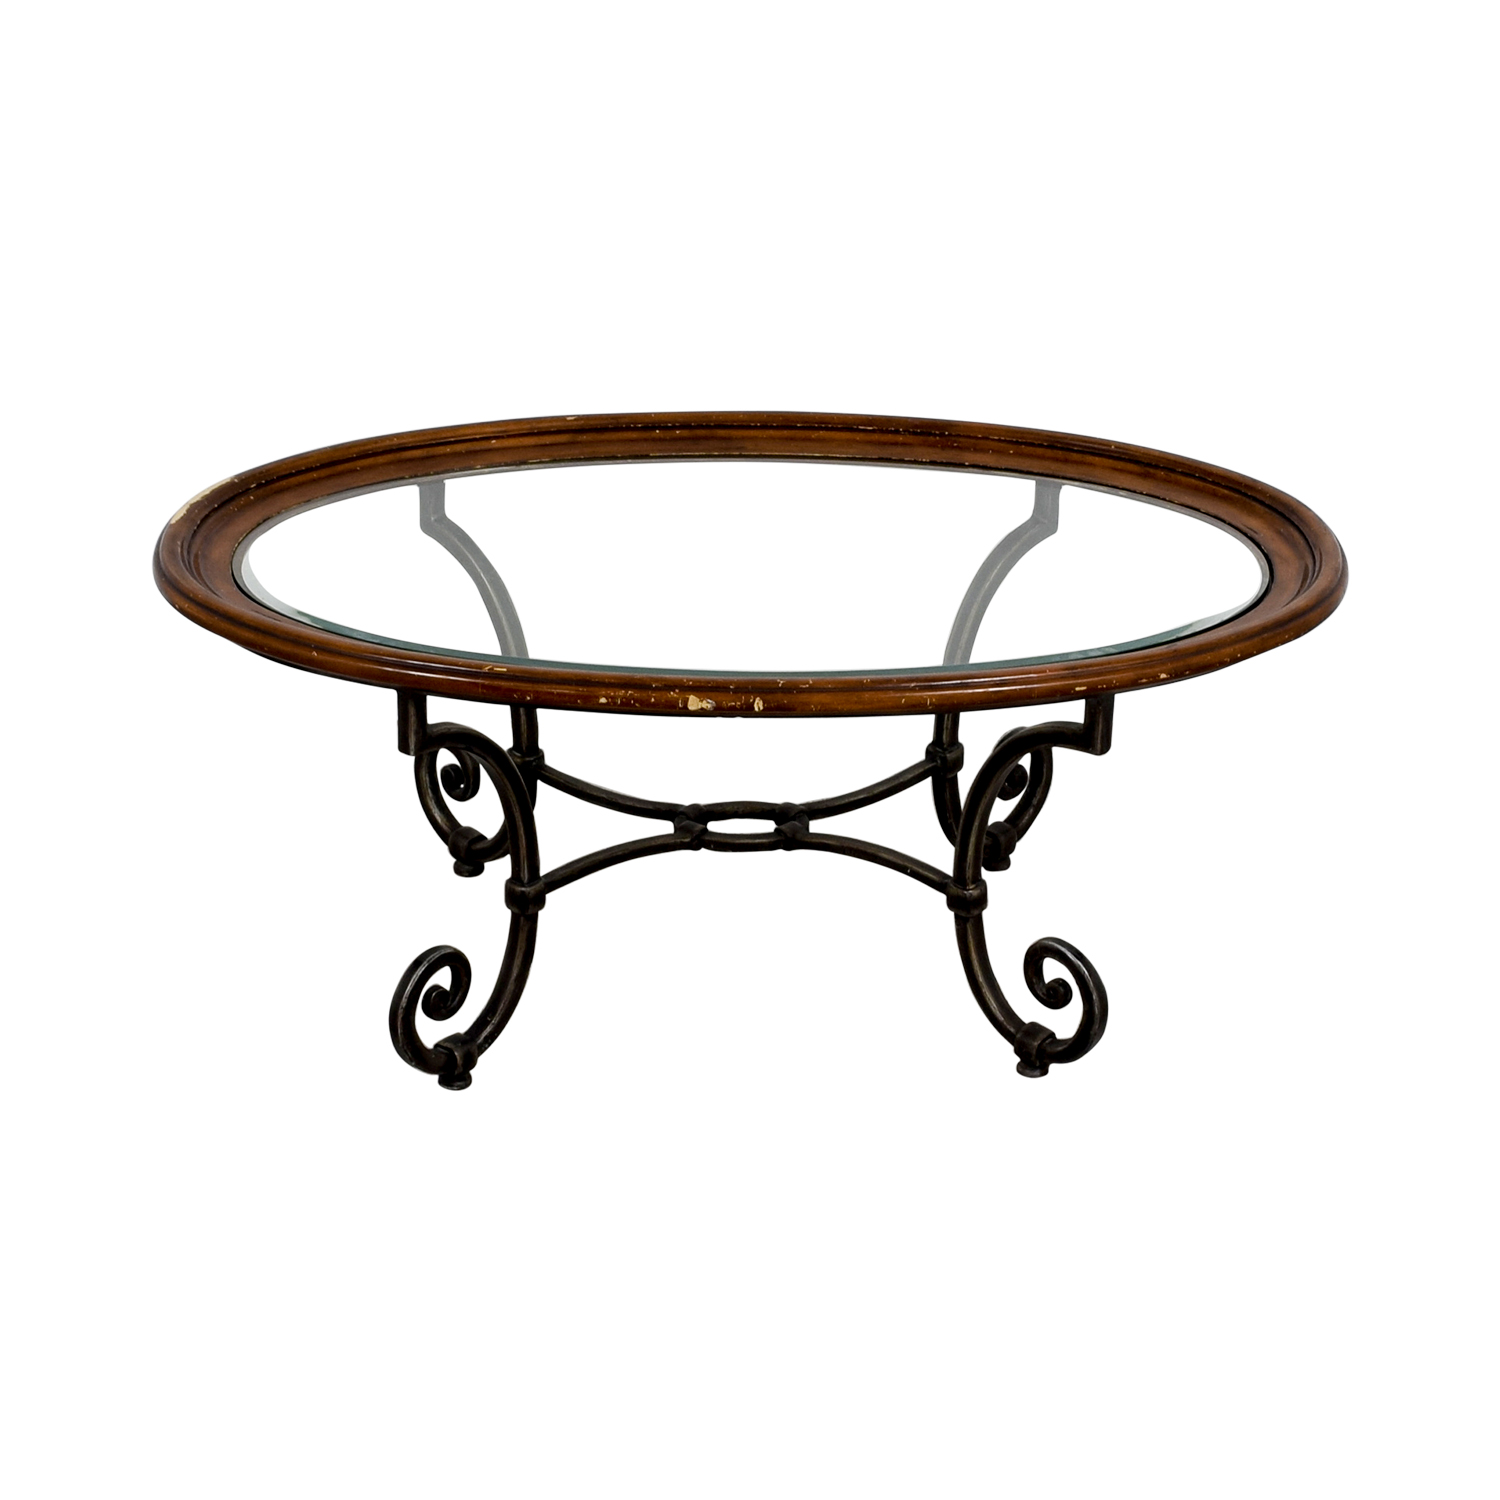 Ethan Allen Ethan Allen Glass Coffee Table on sale